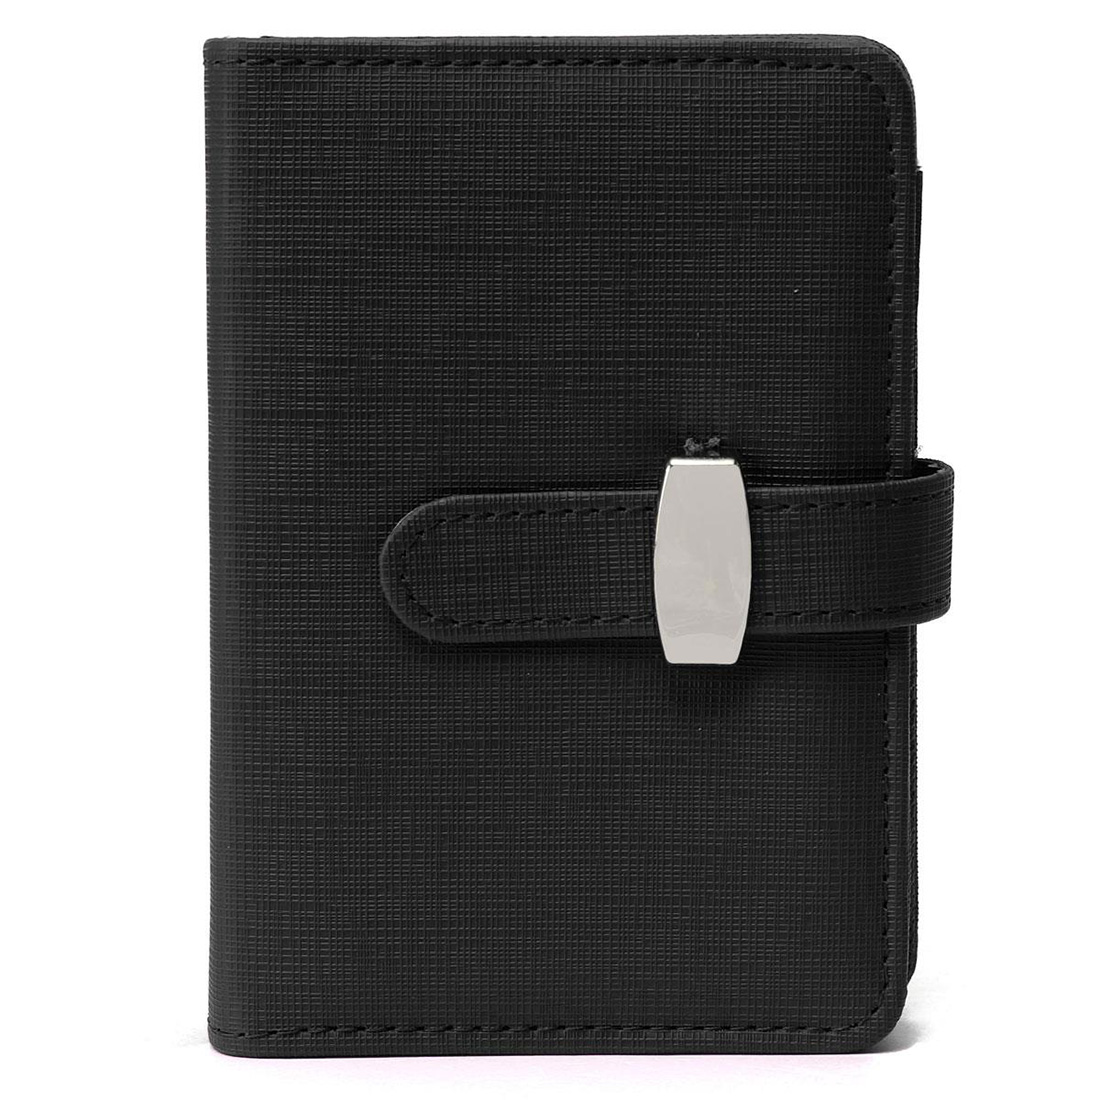 Modern Design A7 Personal Organiser Planner PU Leather Cover Diary Notebook School Office StationeryBlack modern design a7 personal organiser planner pu leather cover diary notebook school office stationery black